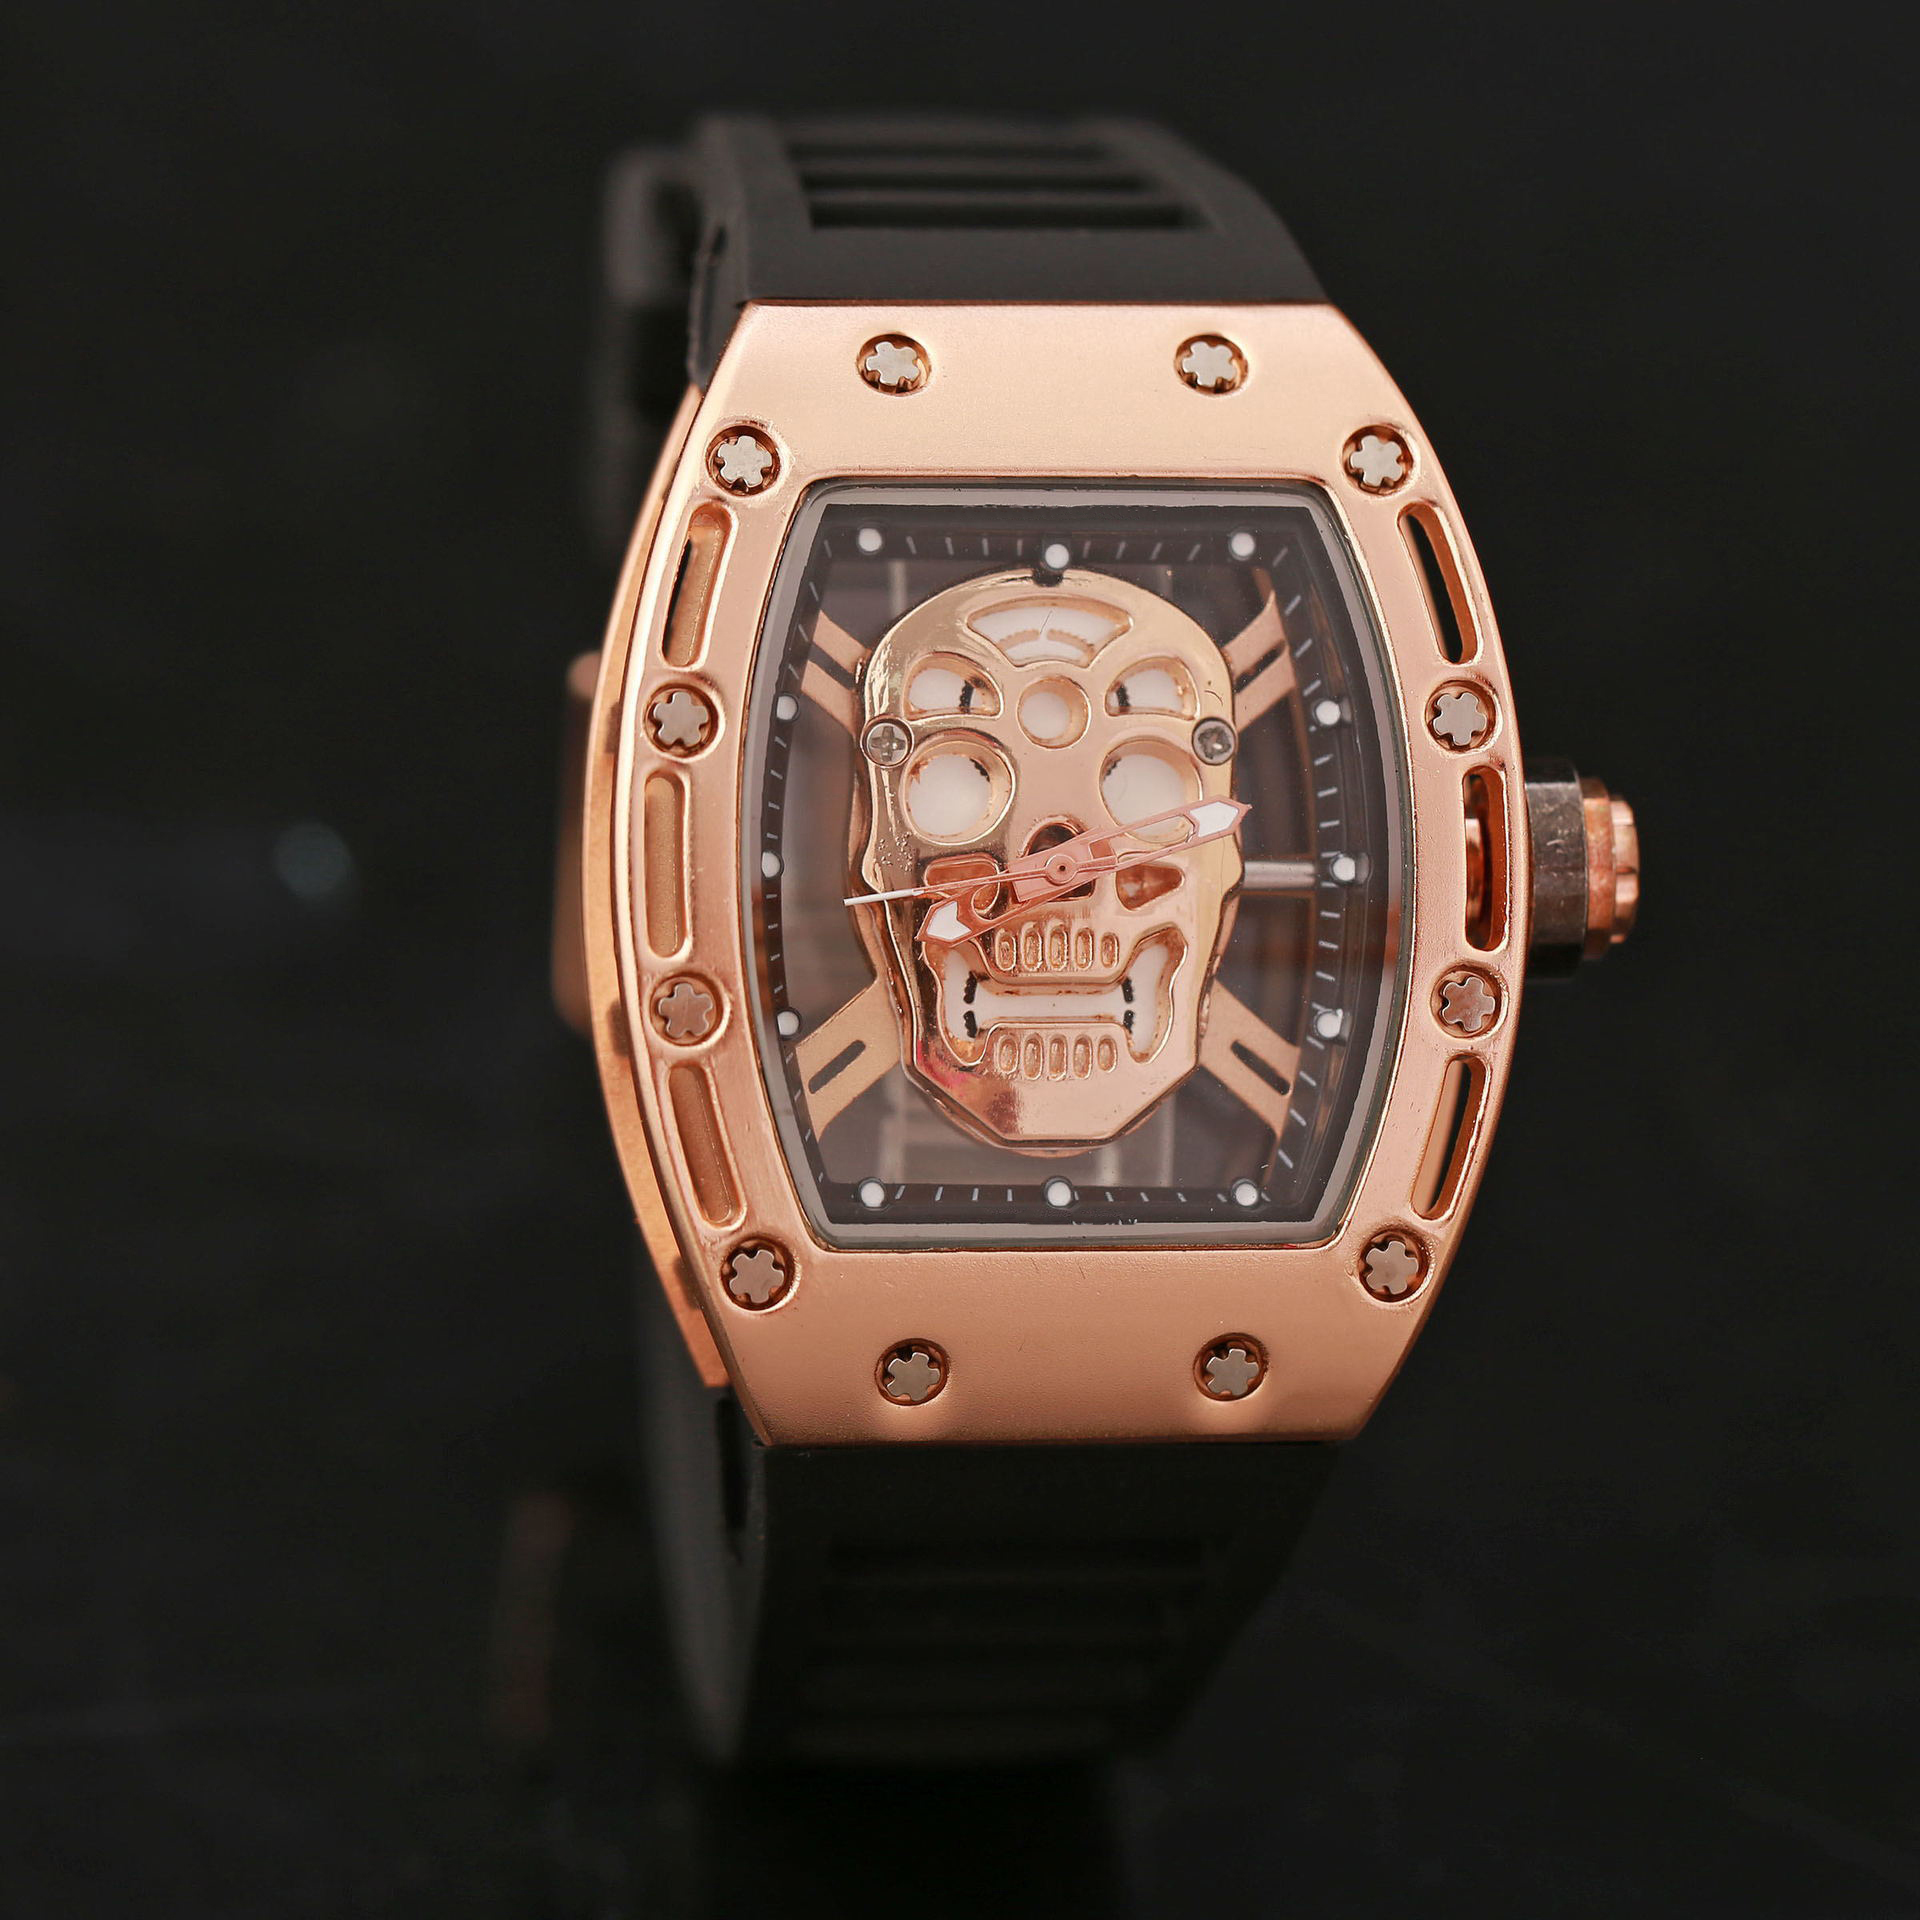 Fotina 2017 New Pirate Skull Watches Men Richard Style Quartz Military Rubber Wrist Watch Men Sports Rose Gold Relogio MasculinoFotina 2017 New Pirate Skull Watches Men Richard Style Quartz Military Rubber Wrist Watch Men Sports Rose Gold Relogio Masculino